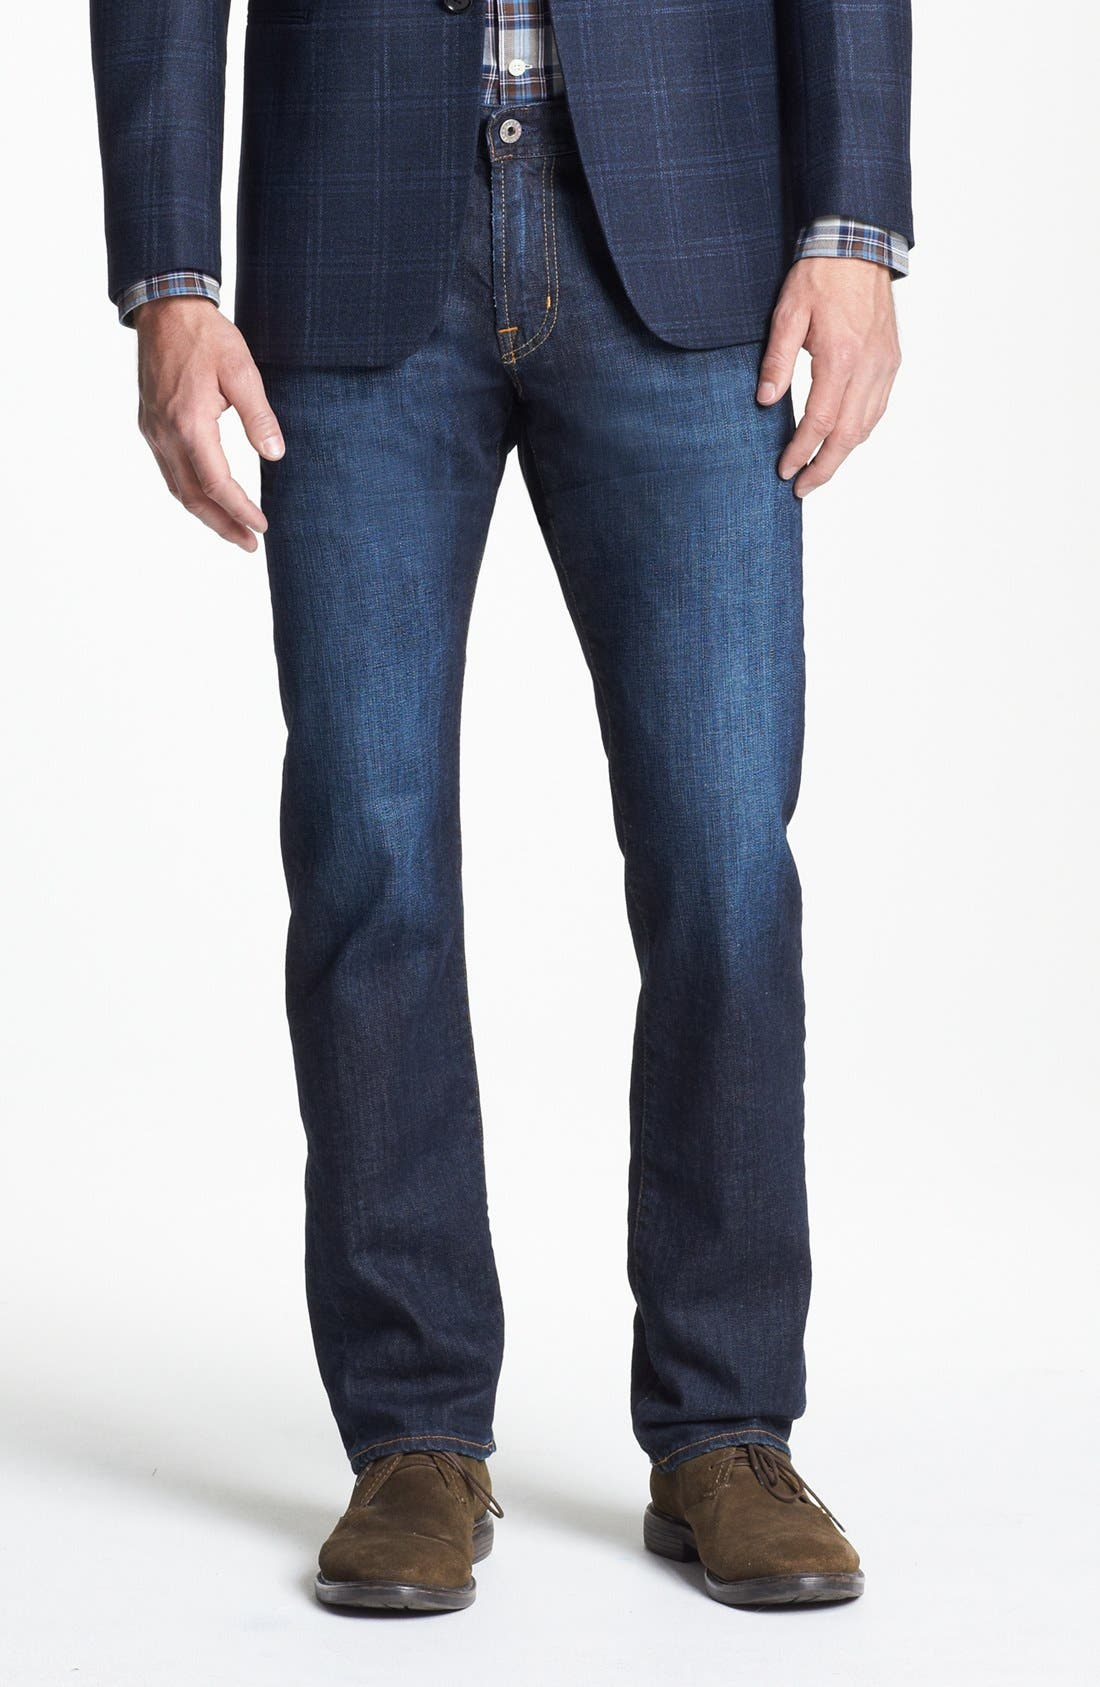 Good shoes for skinny jeans guys